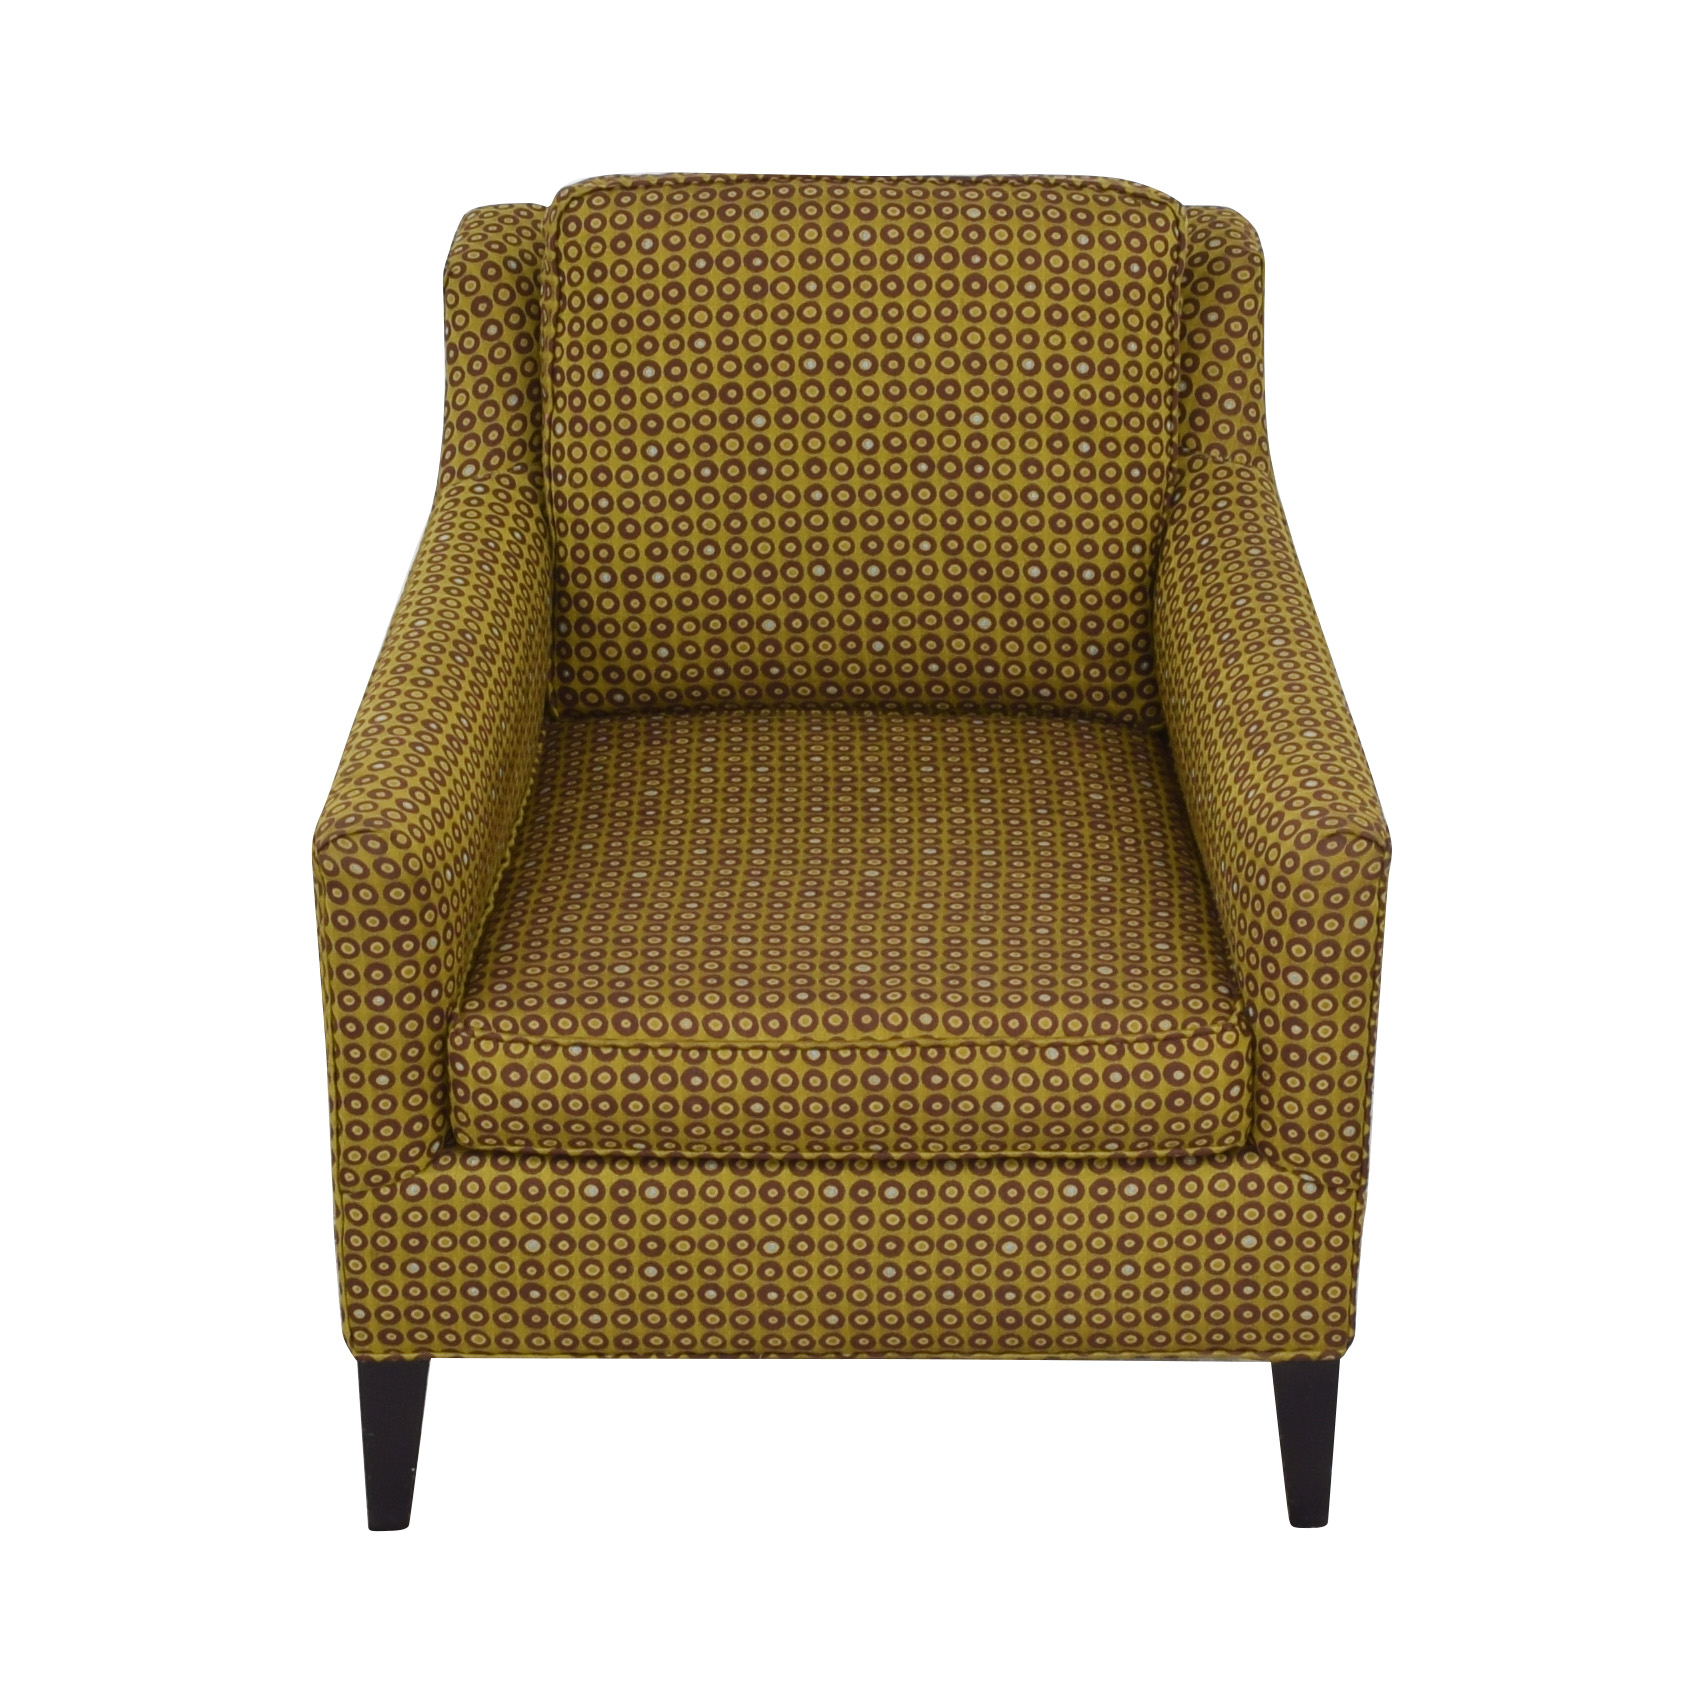 Mitchell Gold + Bob Williams Mitchell Gold + Bob Williams Club Chair discount